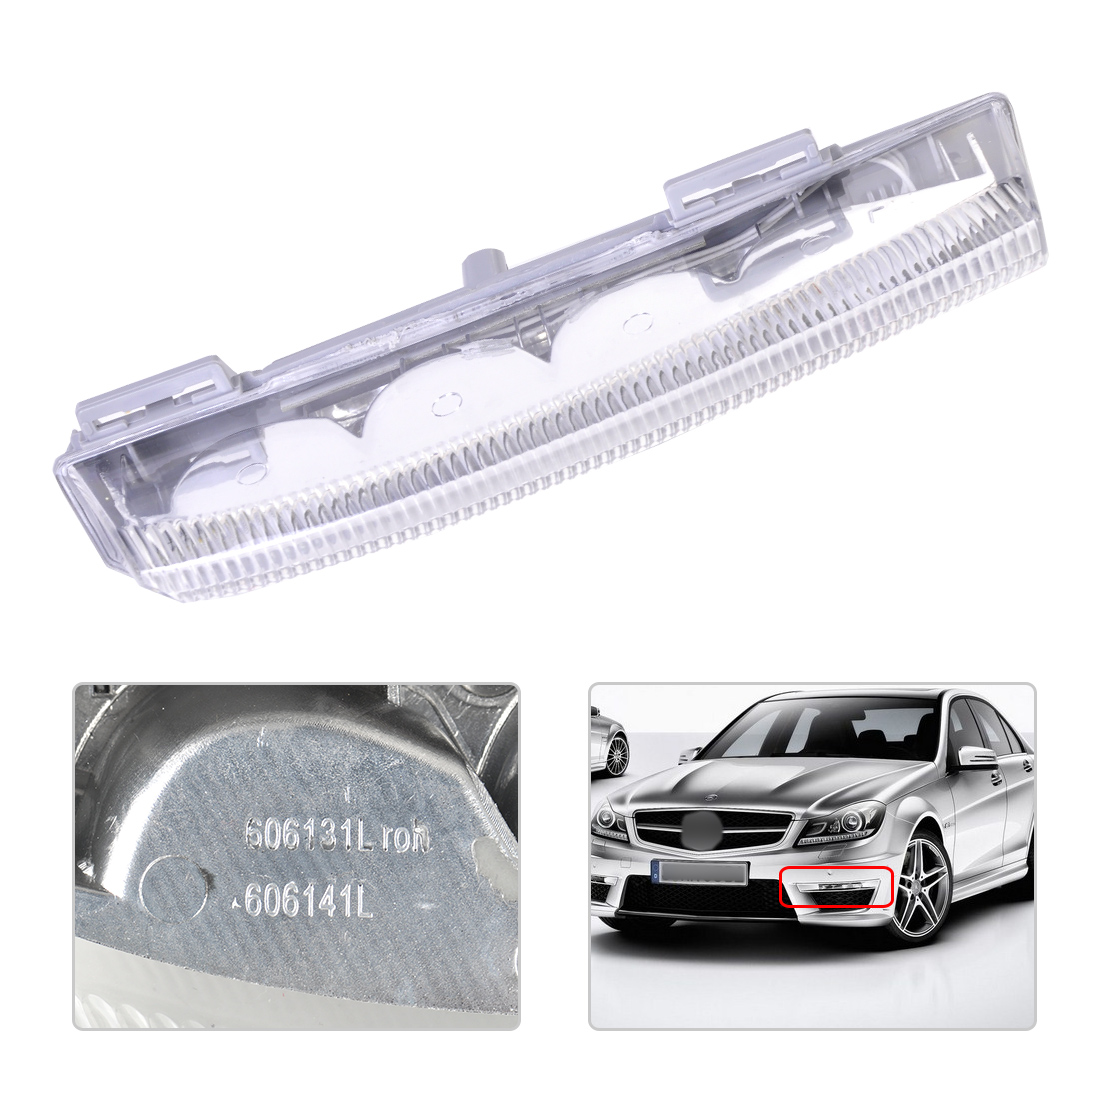 1Pc New Daytime Running Lamp Fog Light Left Side 2049068900 204 906 89 00 Fit for Mercedes Benz W204 W212 R172 july king 1pc left driver side fog light lamp case for mercedes benz r171 w164 w203 w204 w216 w230 w253 amg aftermarket